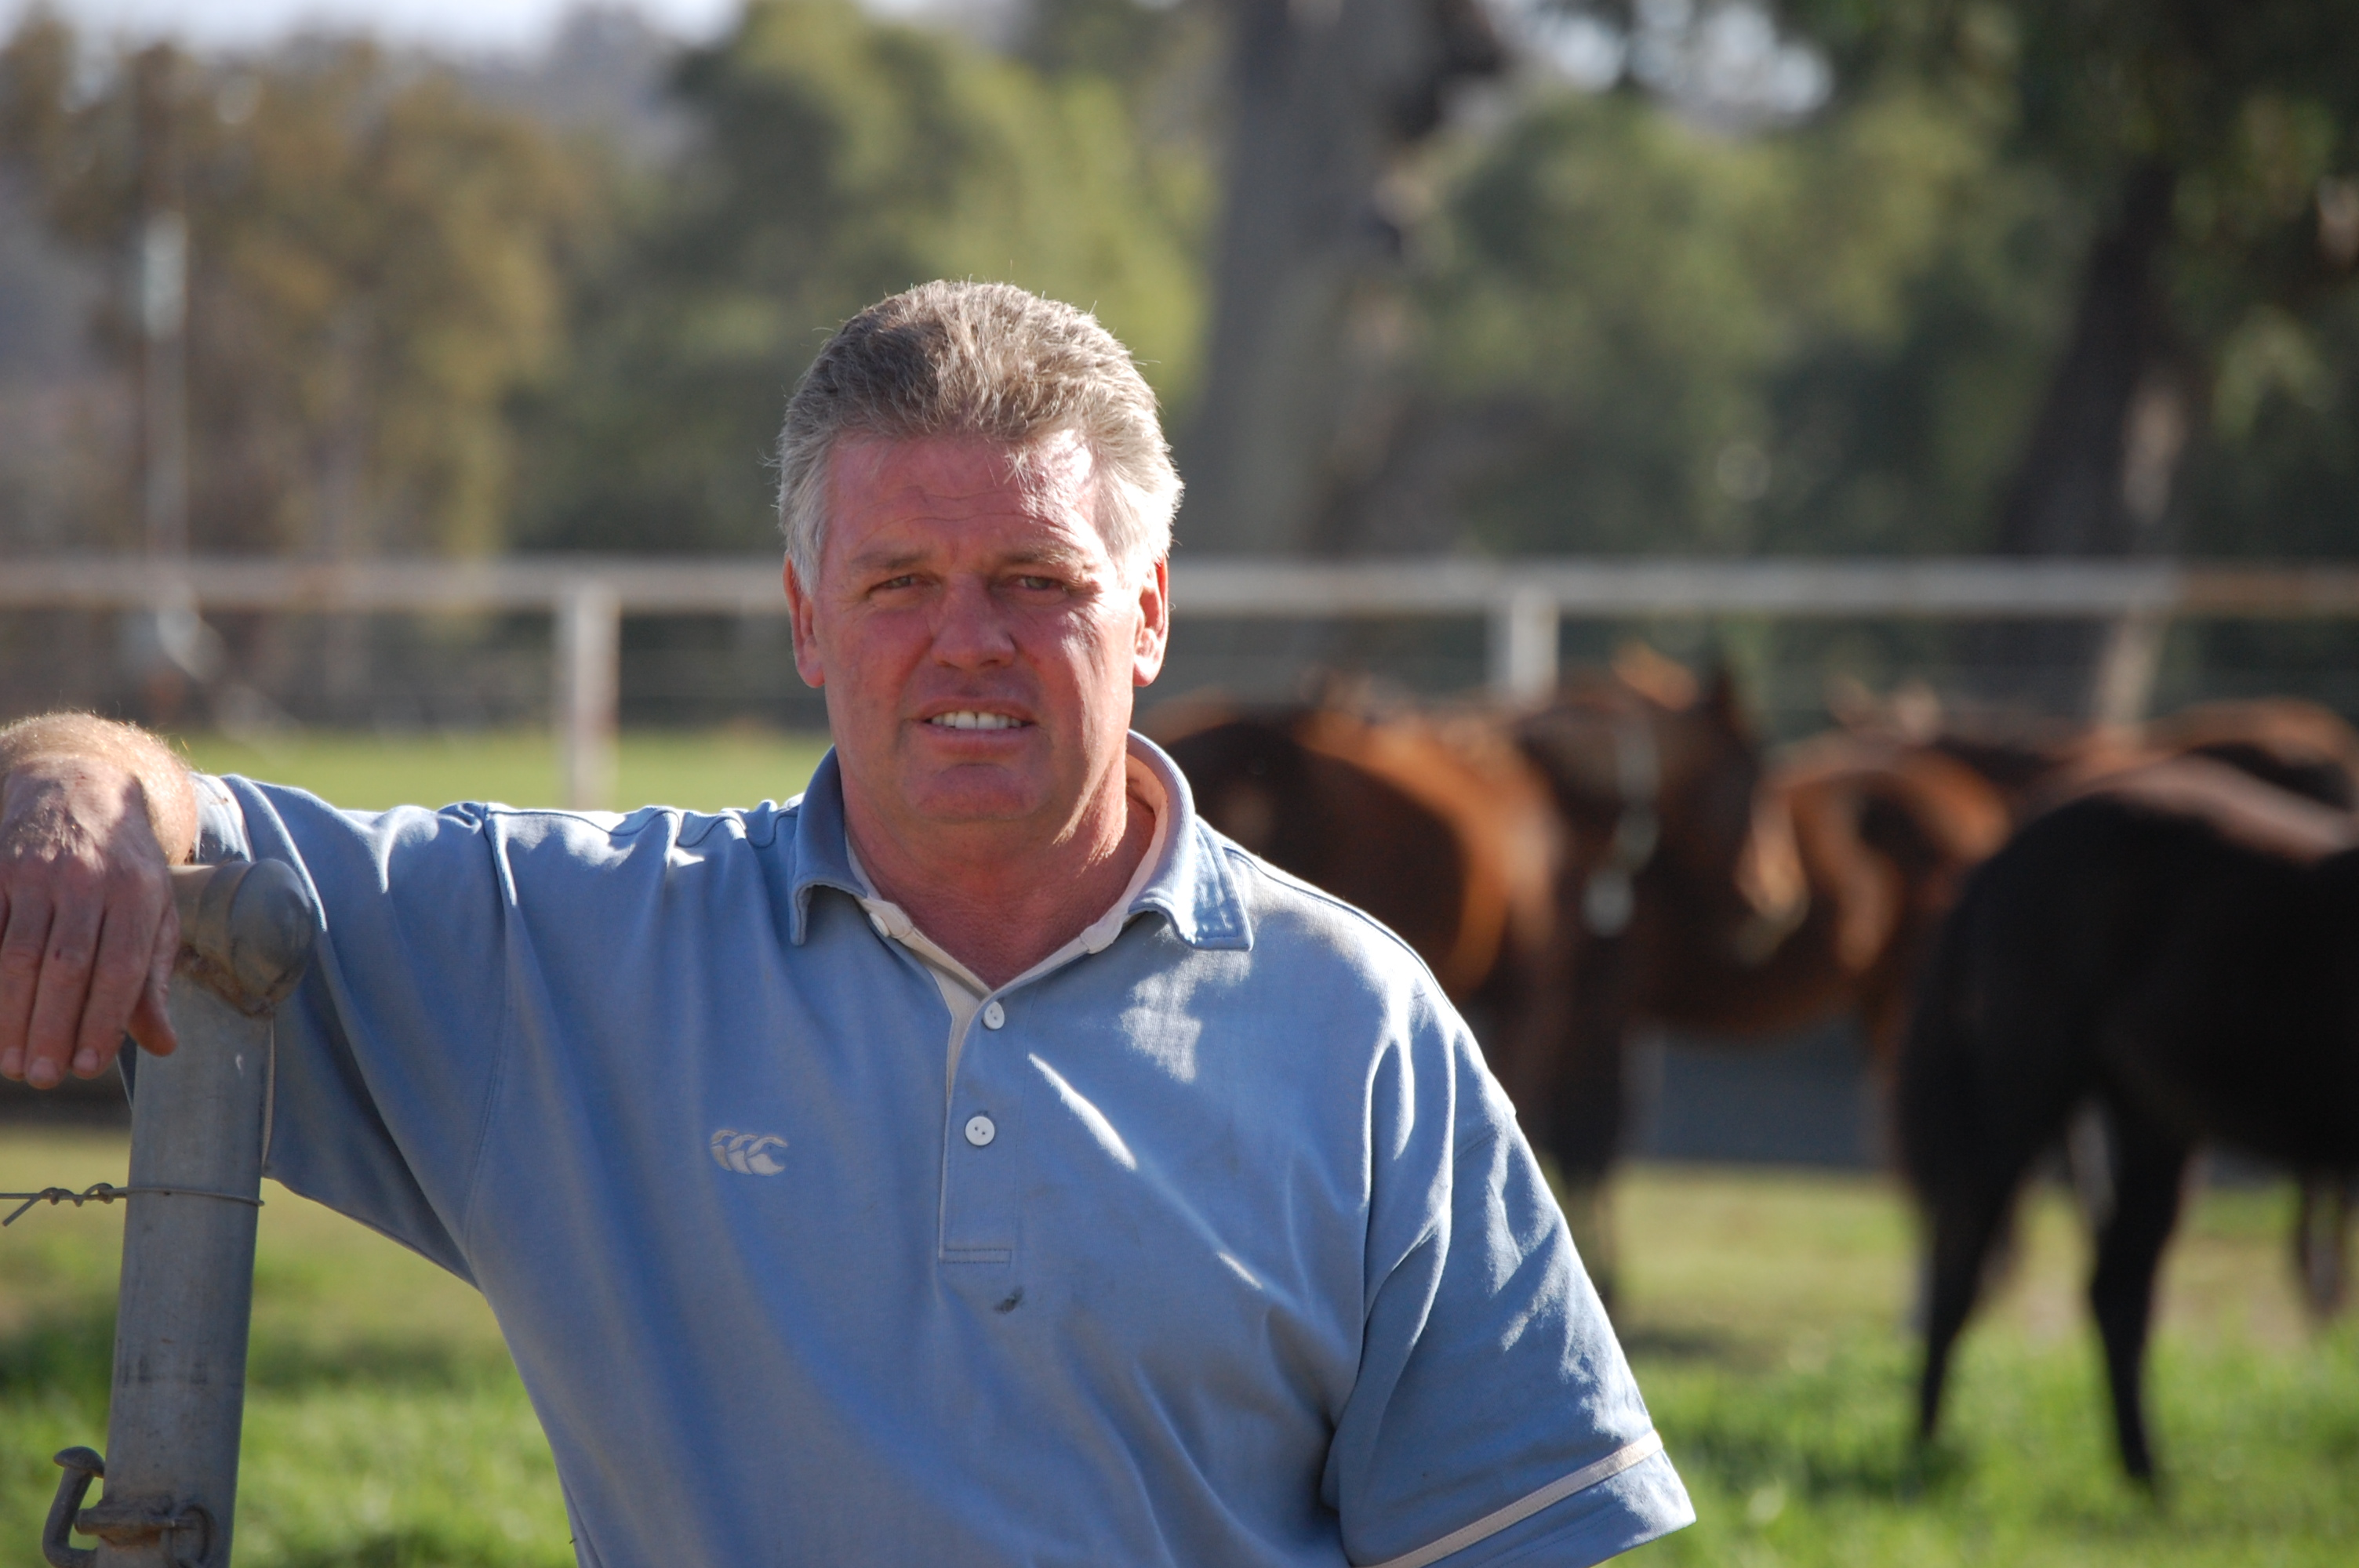 Leeton Preview July 31: DIEBERT'S OUT TO  KEEP RECORD UP